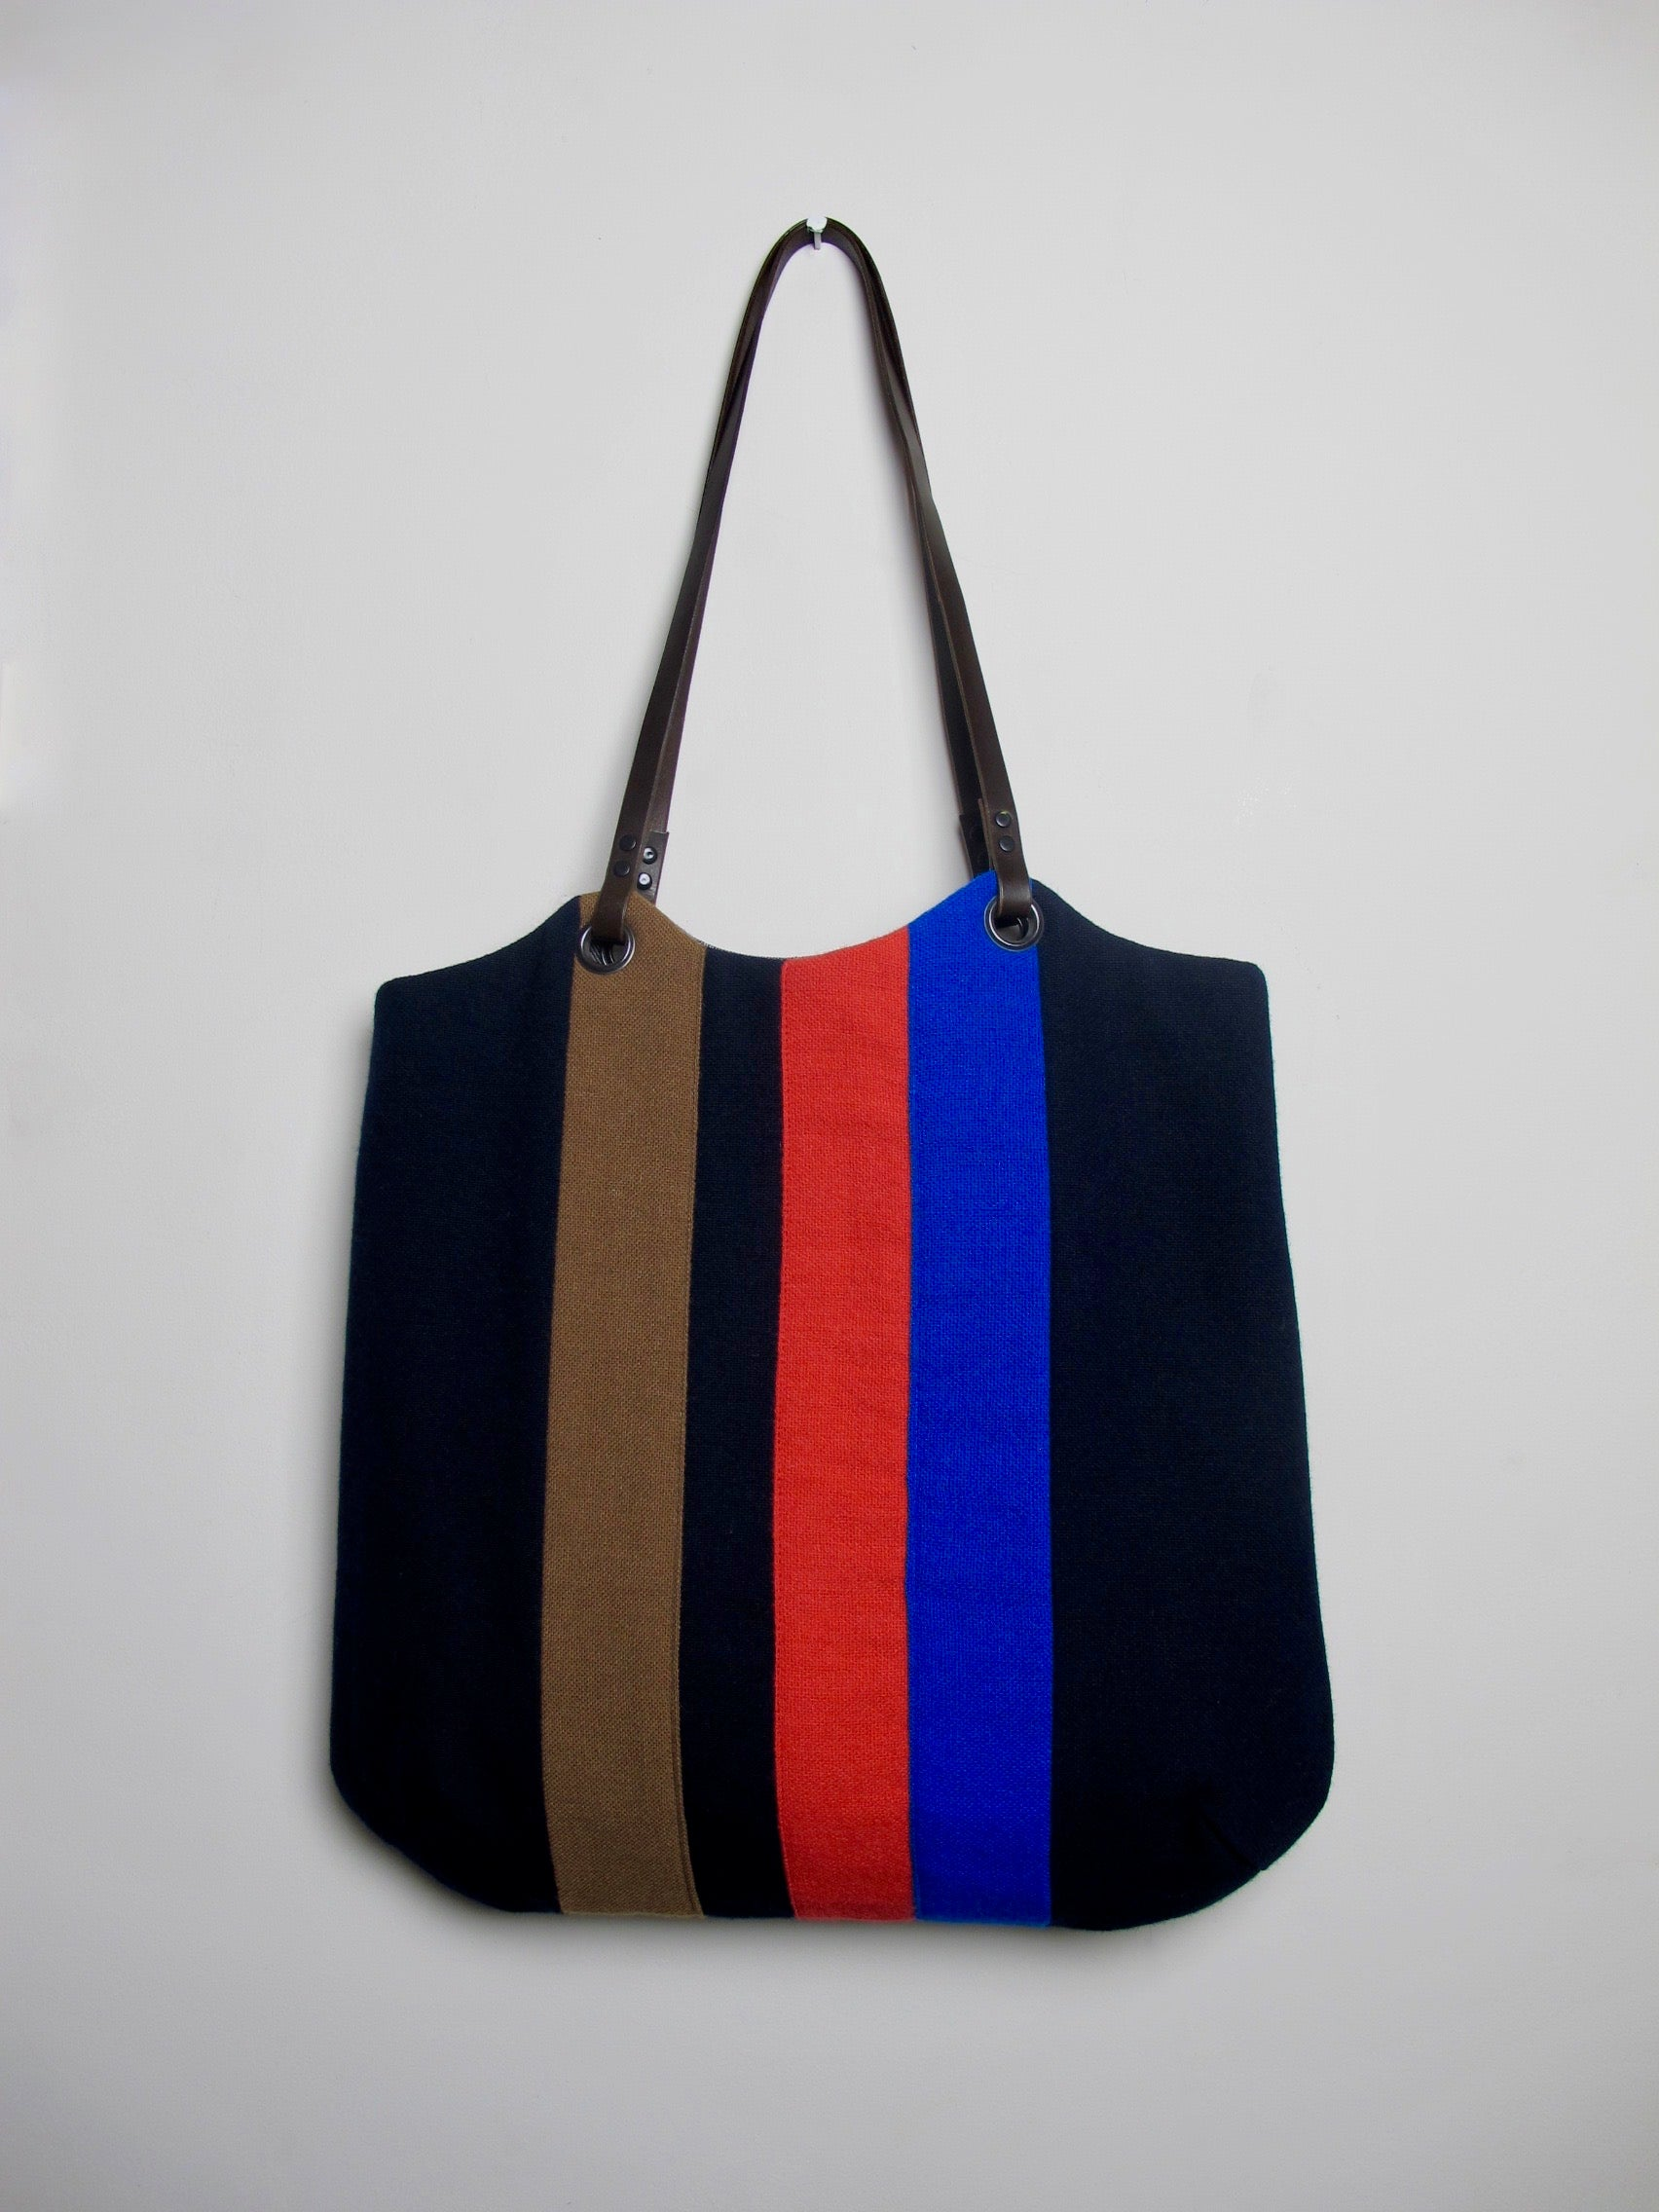 Patchwork Tote Bag - old school navy I